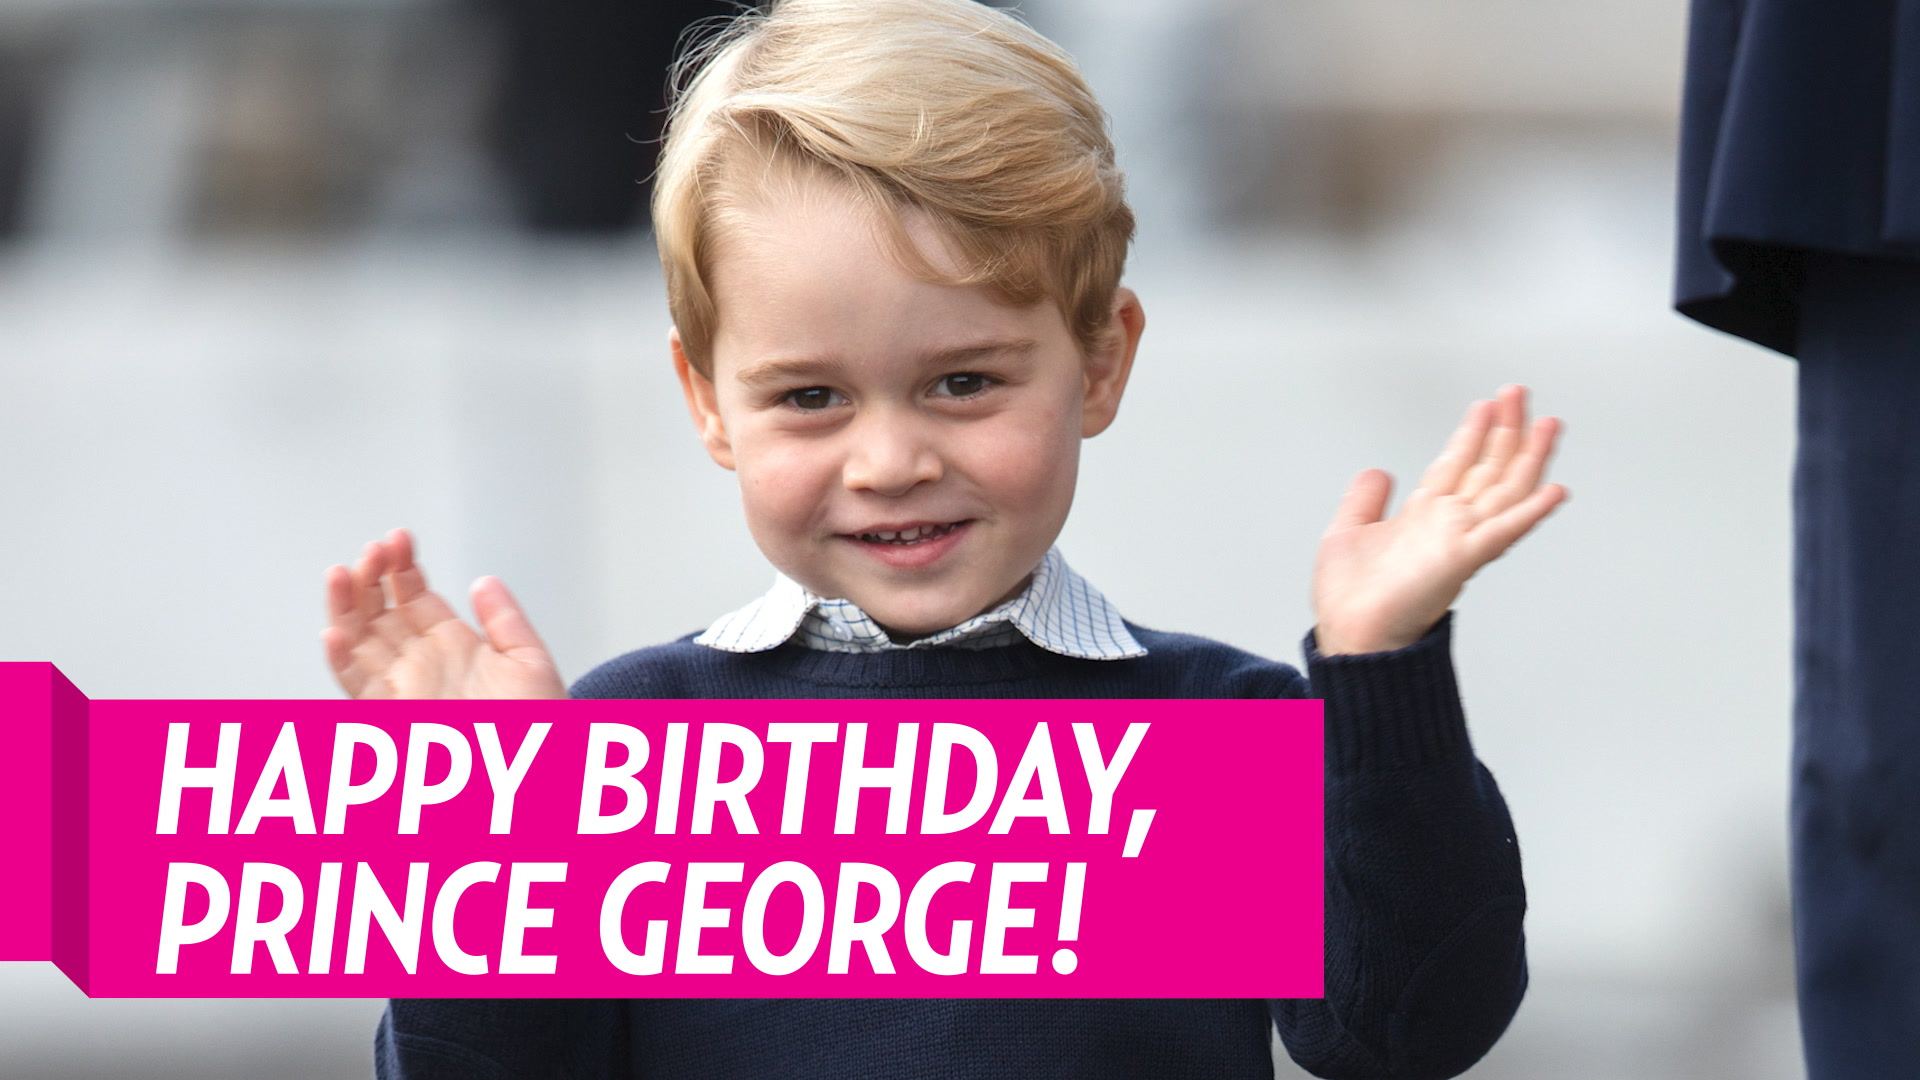 Magic Show and Pizza! How Prince George Will Celebrate His 6th Birthday